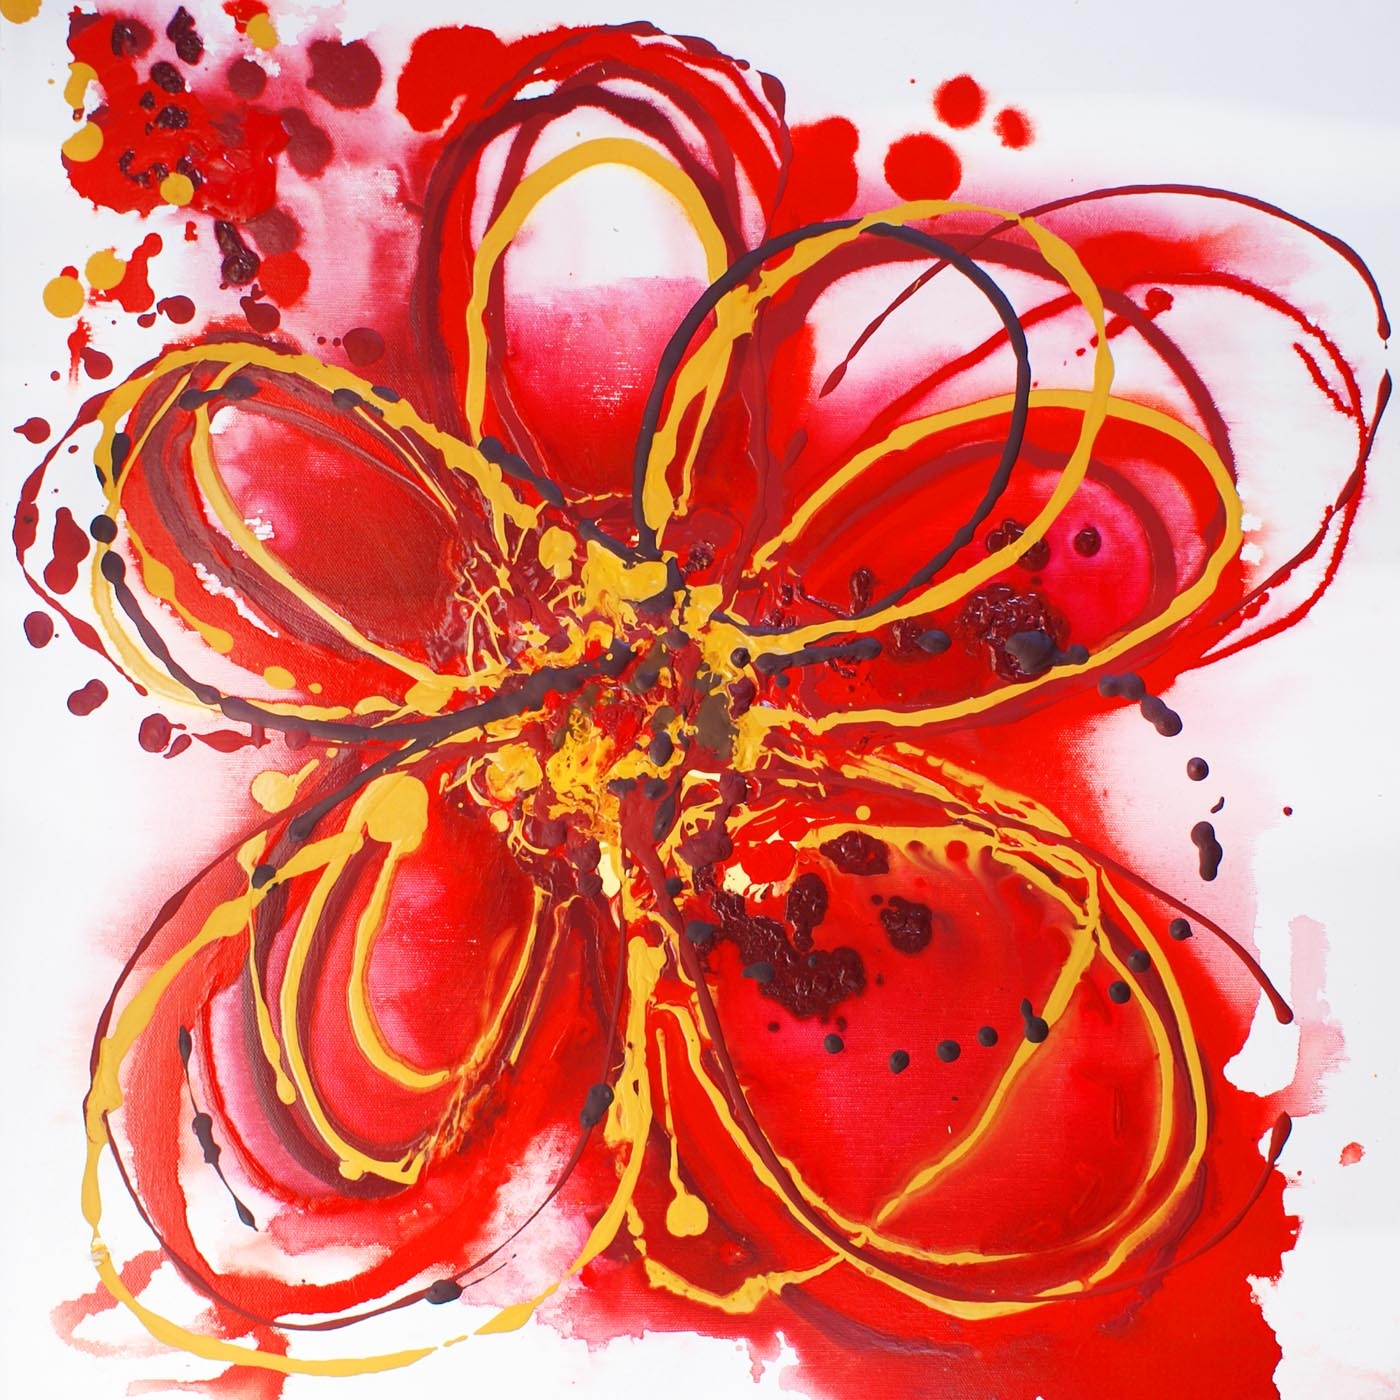 Red Flower clipart abstract #13